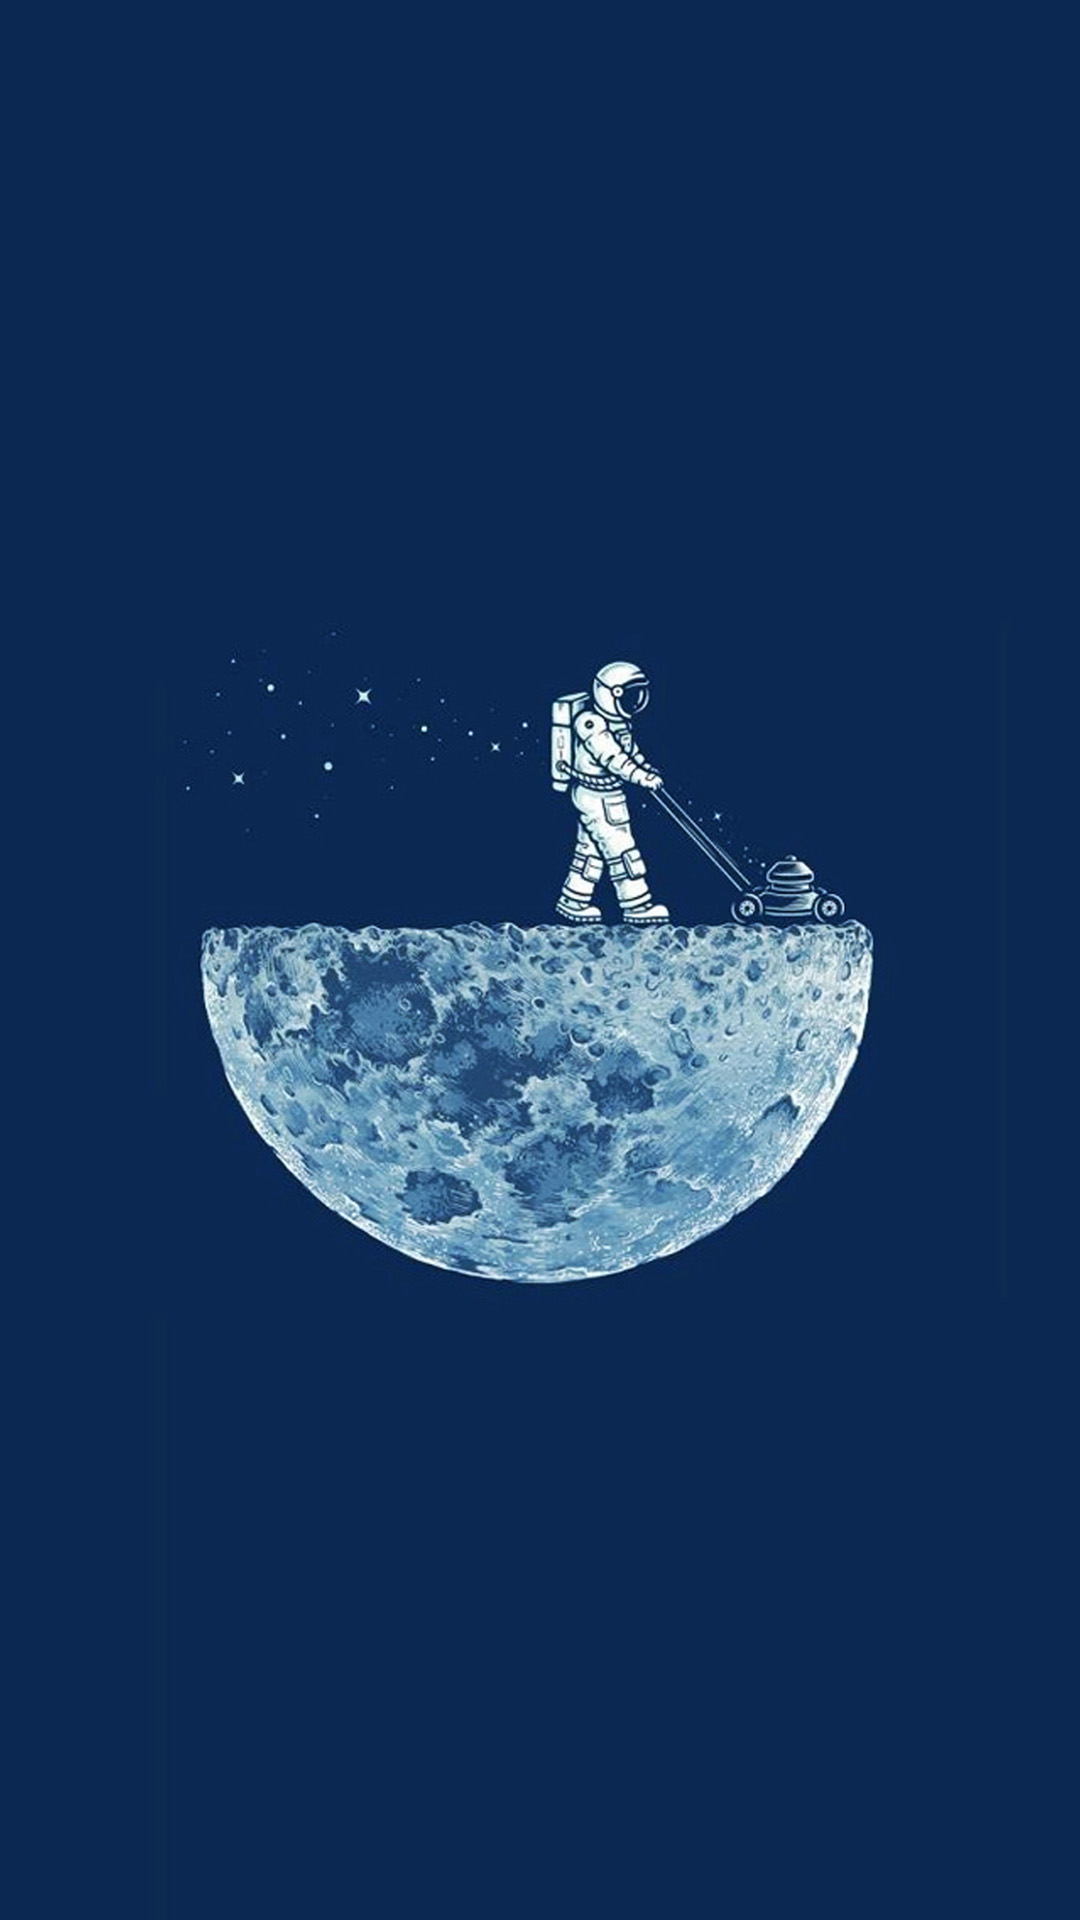 Astronaut Moon Smartphone Wallpapers HD